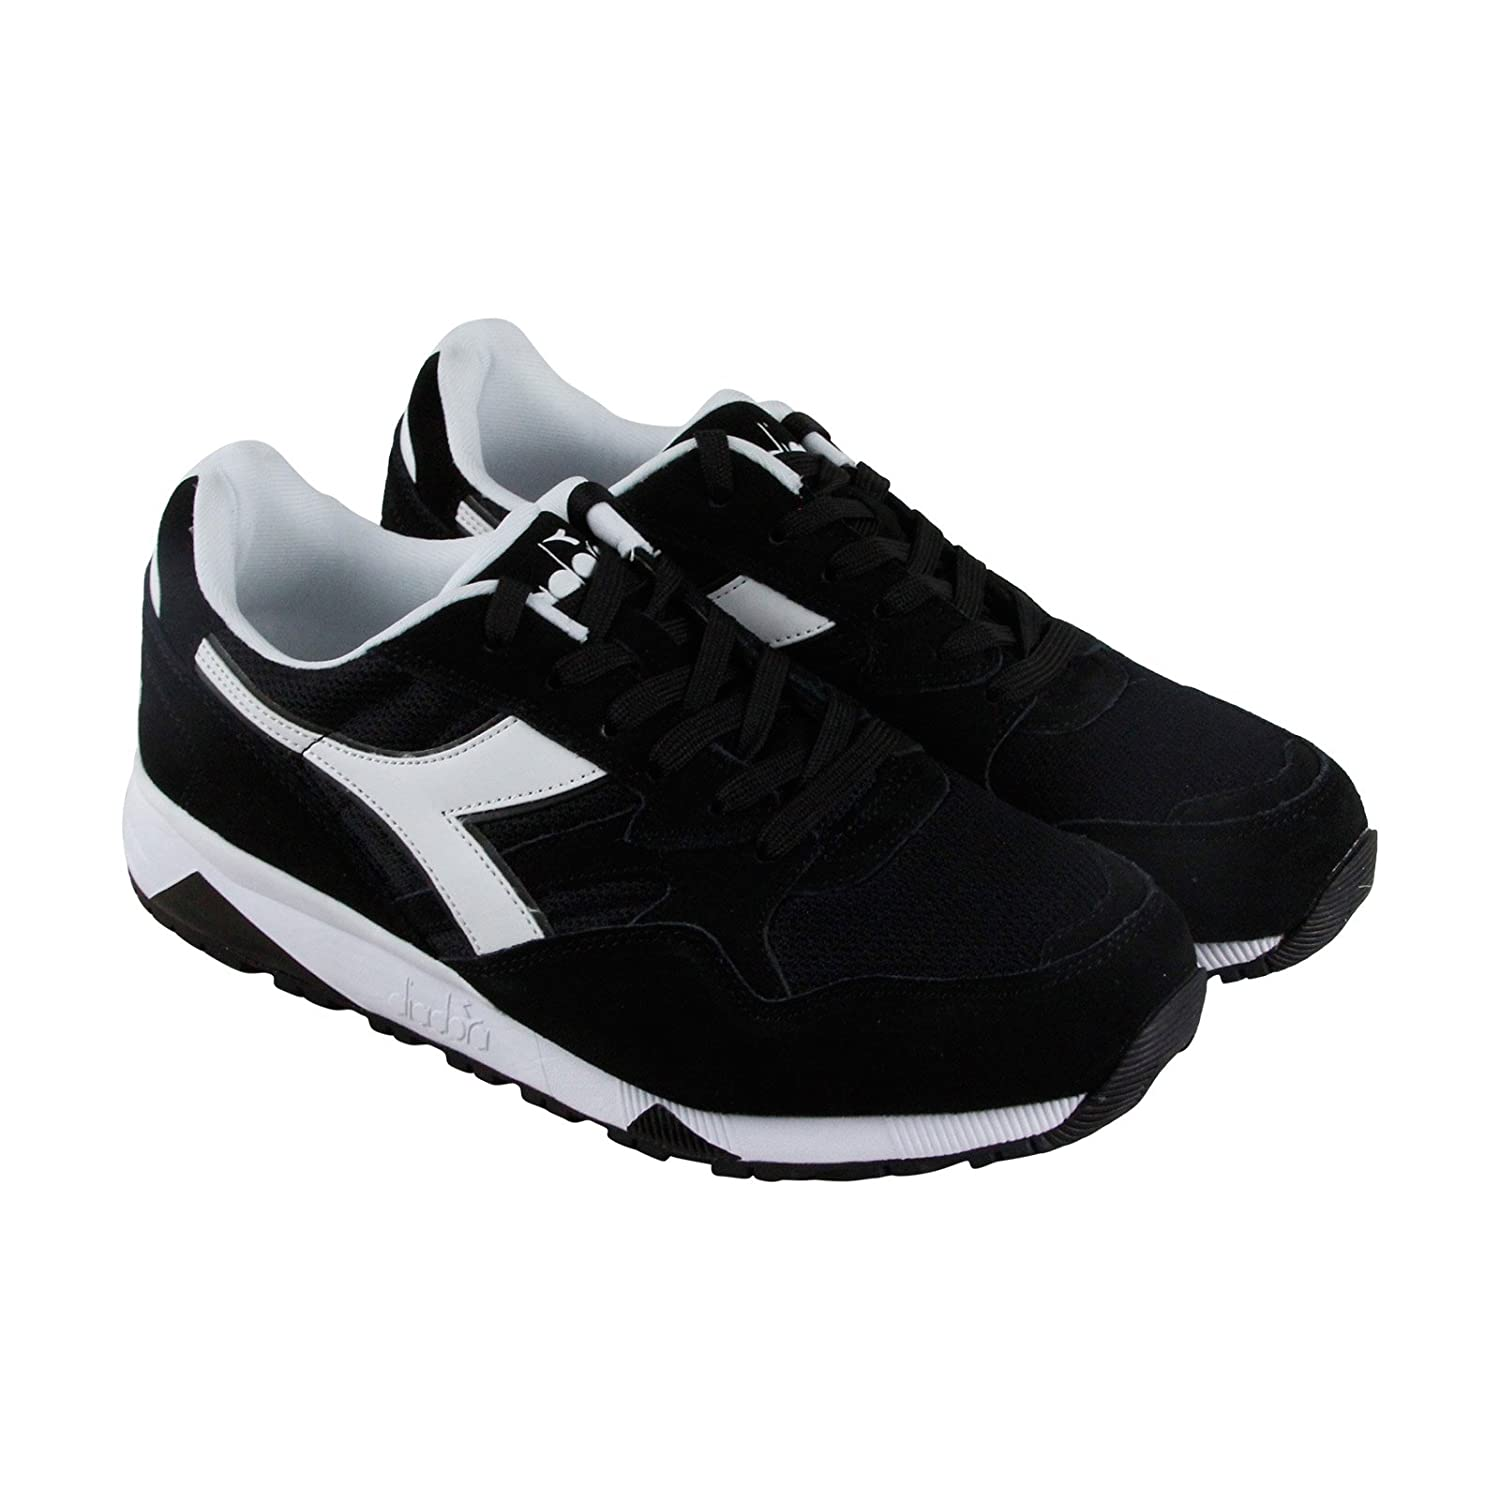 Diadora Men's N902 S Low Top Shoes Black